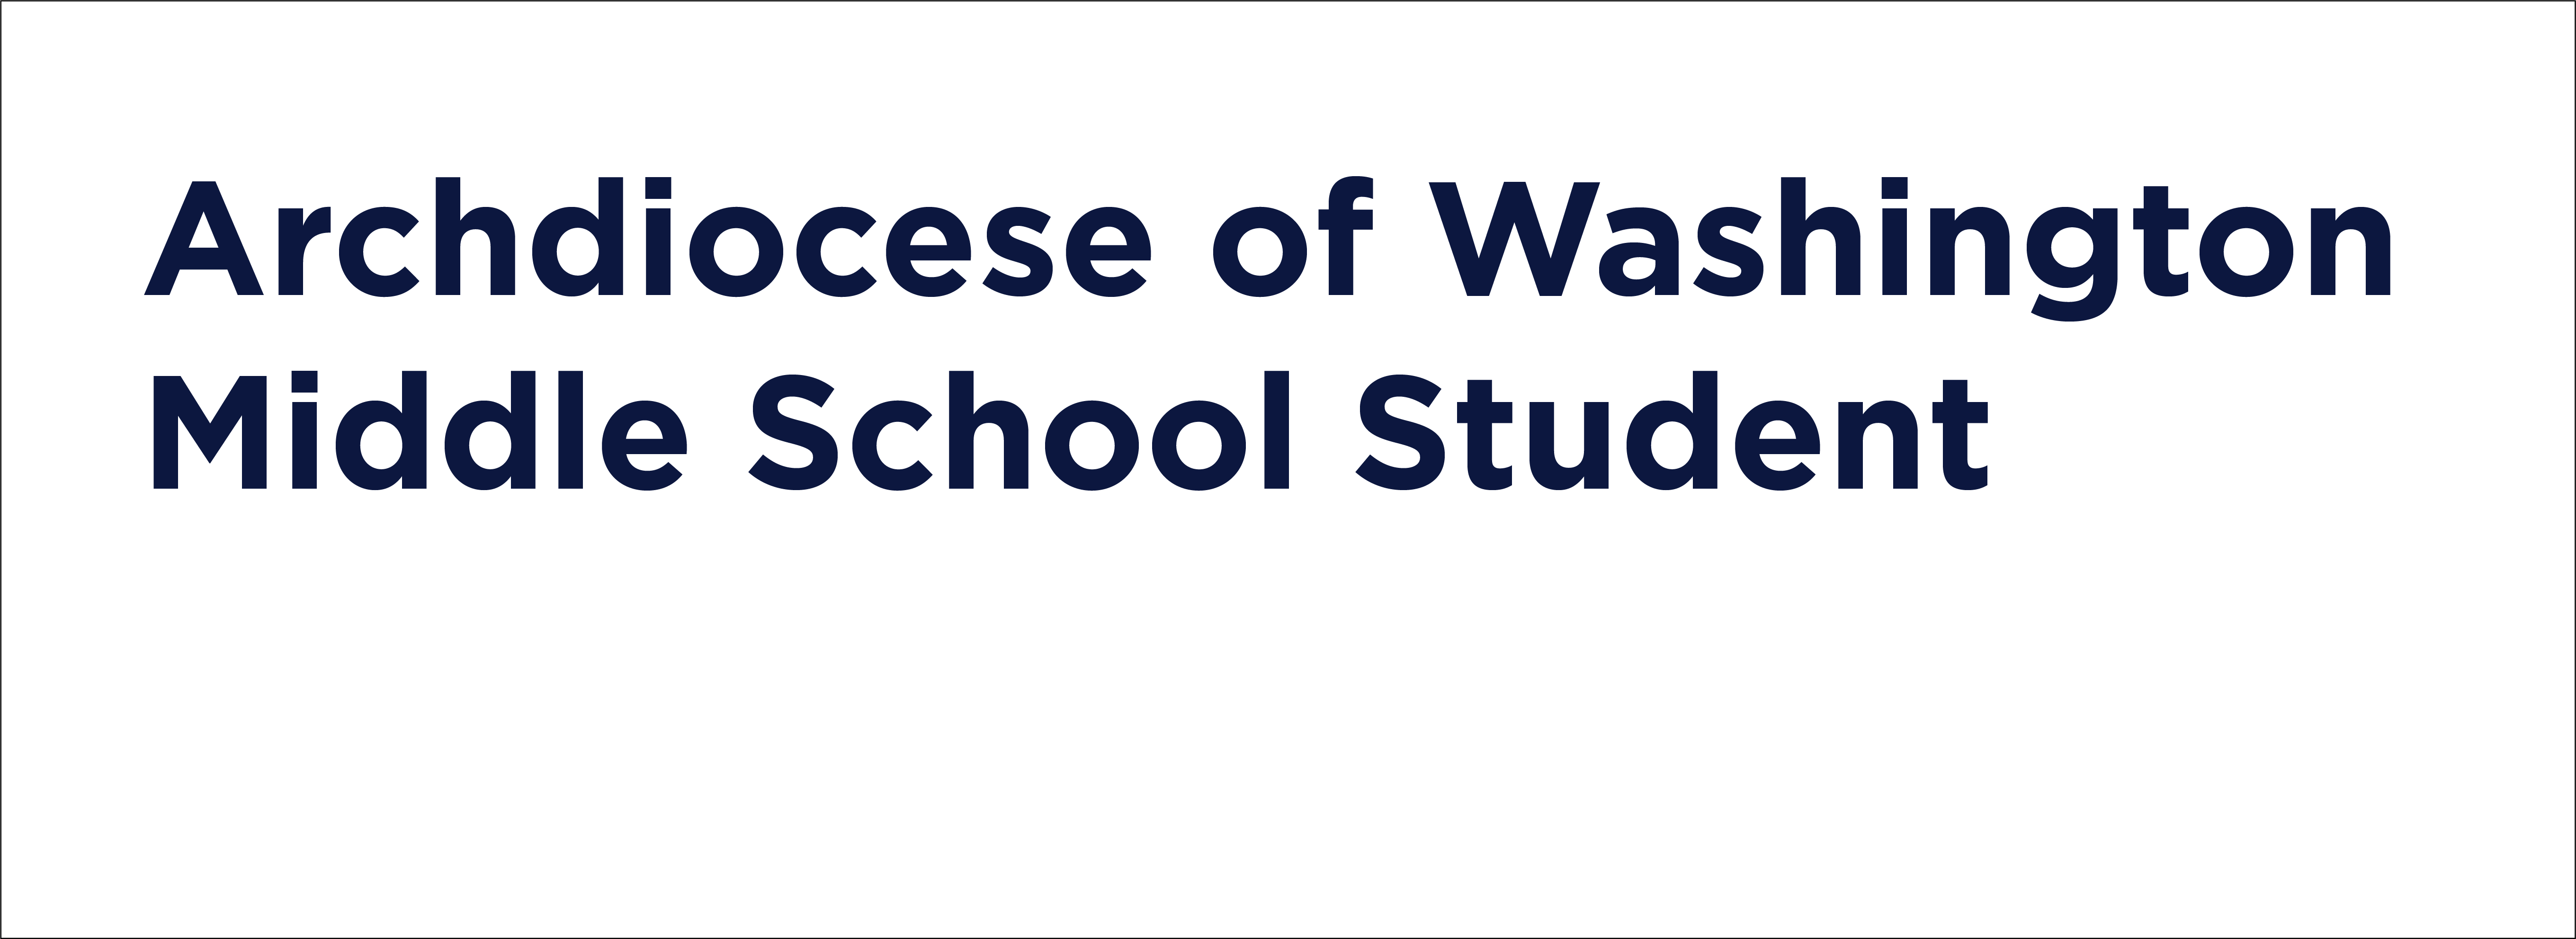 archdiocese of washington middle school student image